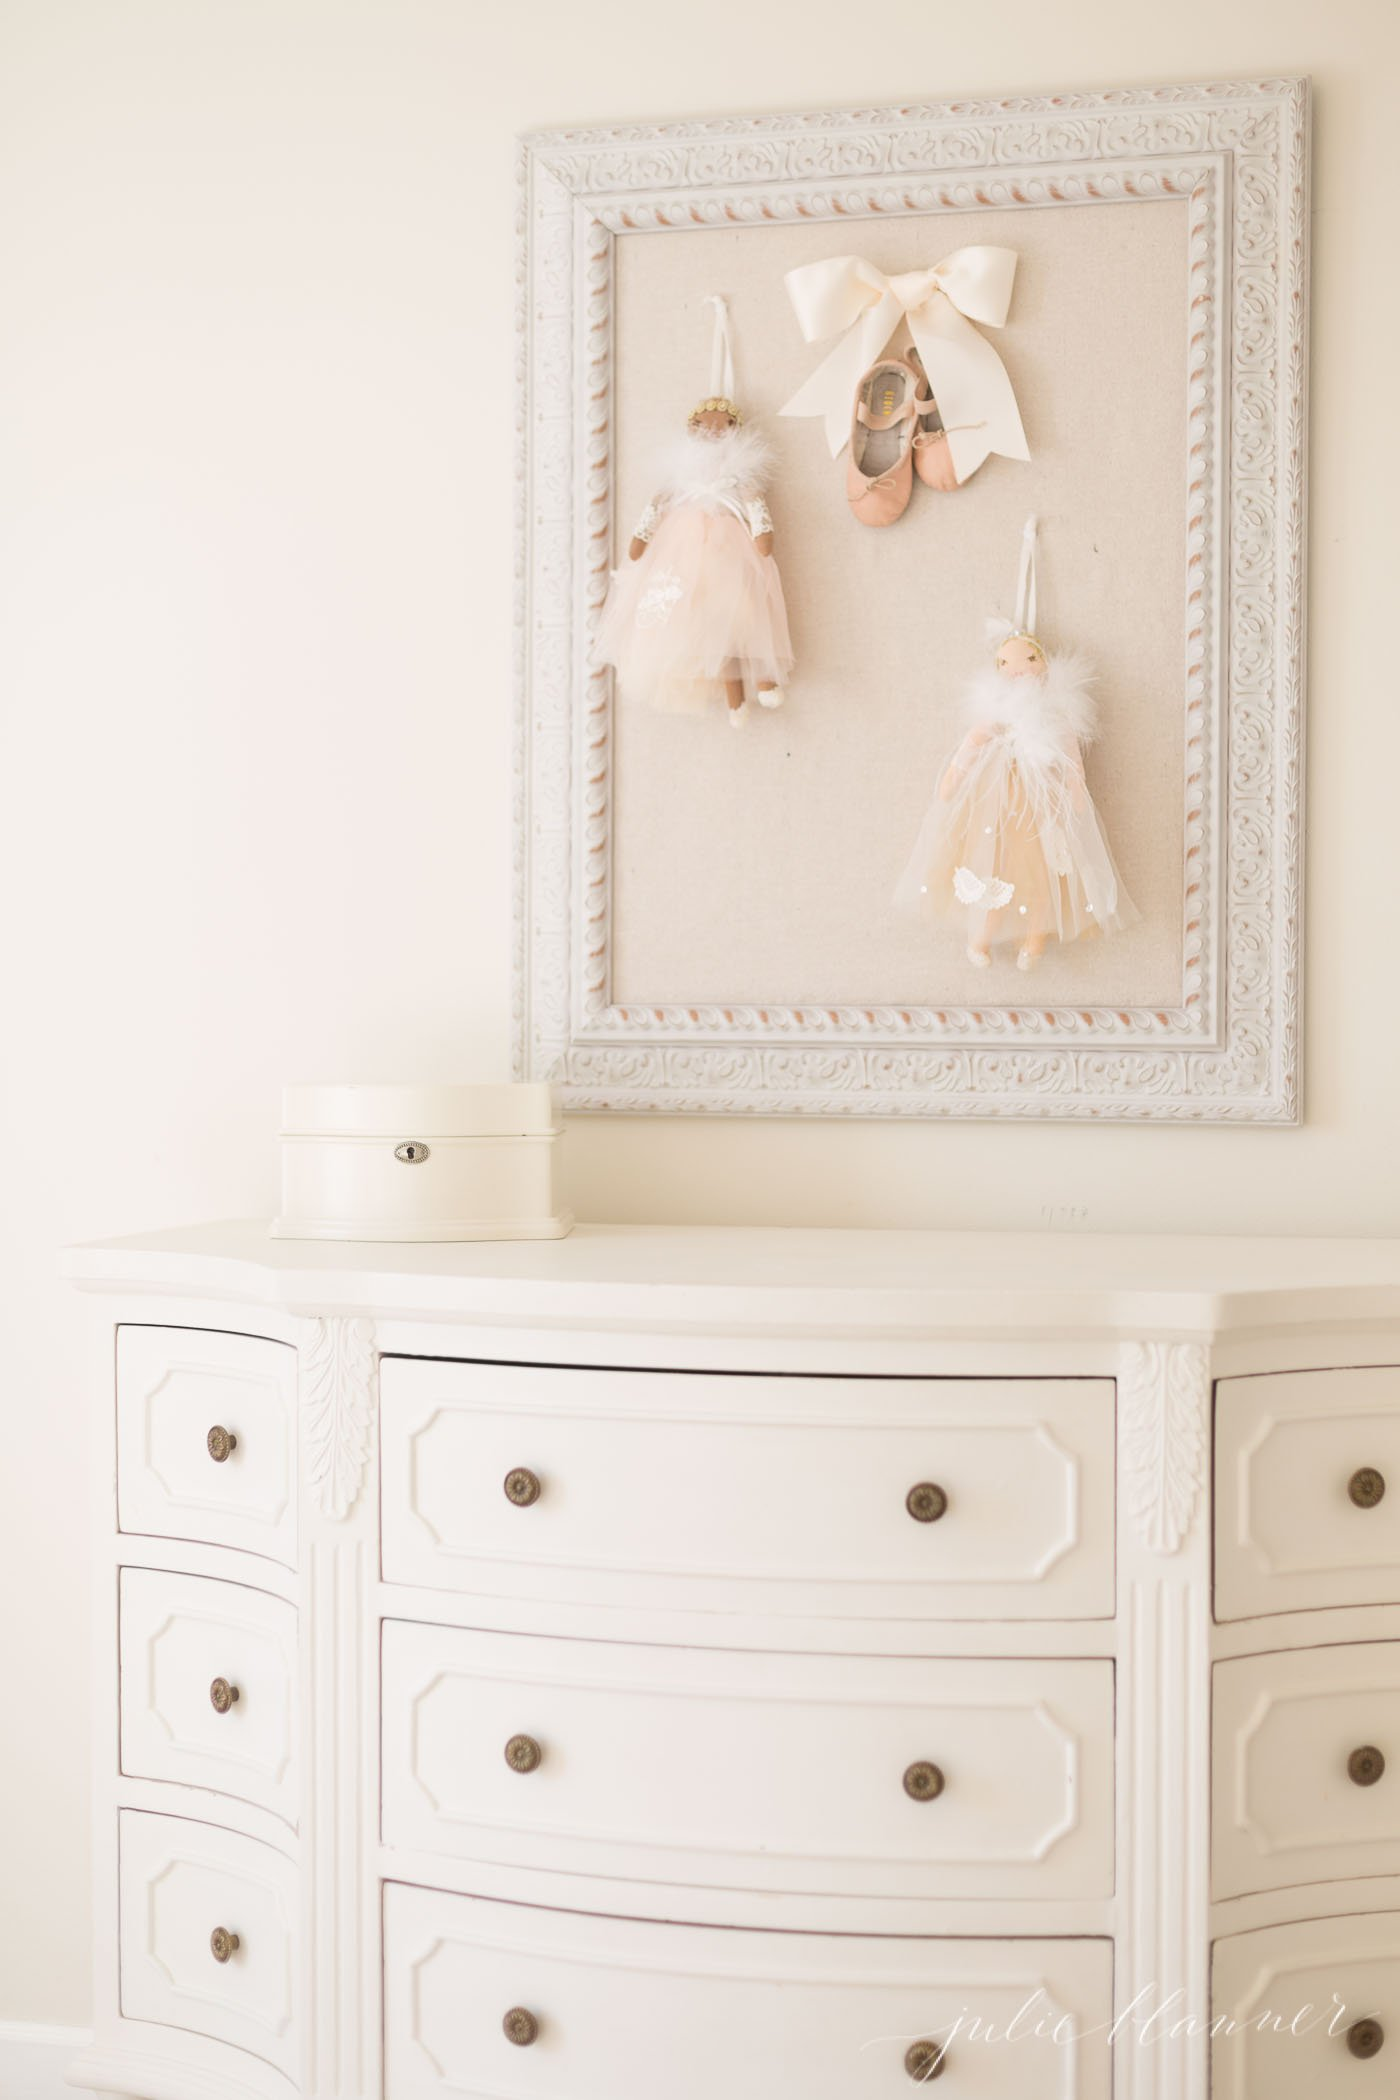 furniture paint on a vintage dresser with a soft white pin board full of little girl's room decor.